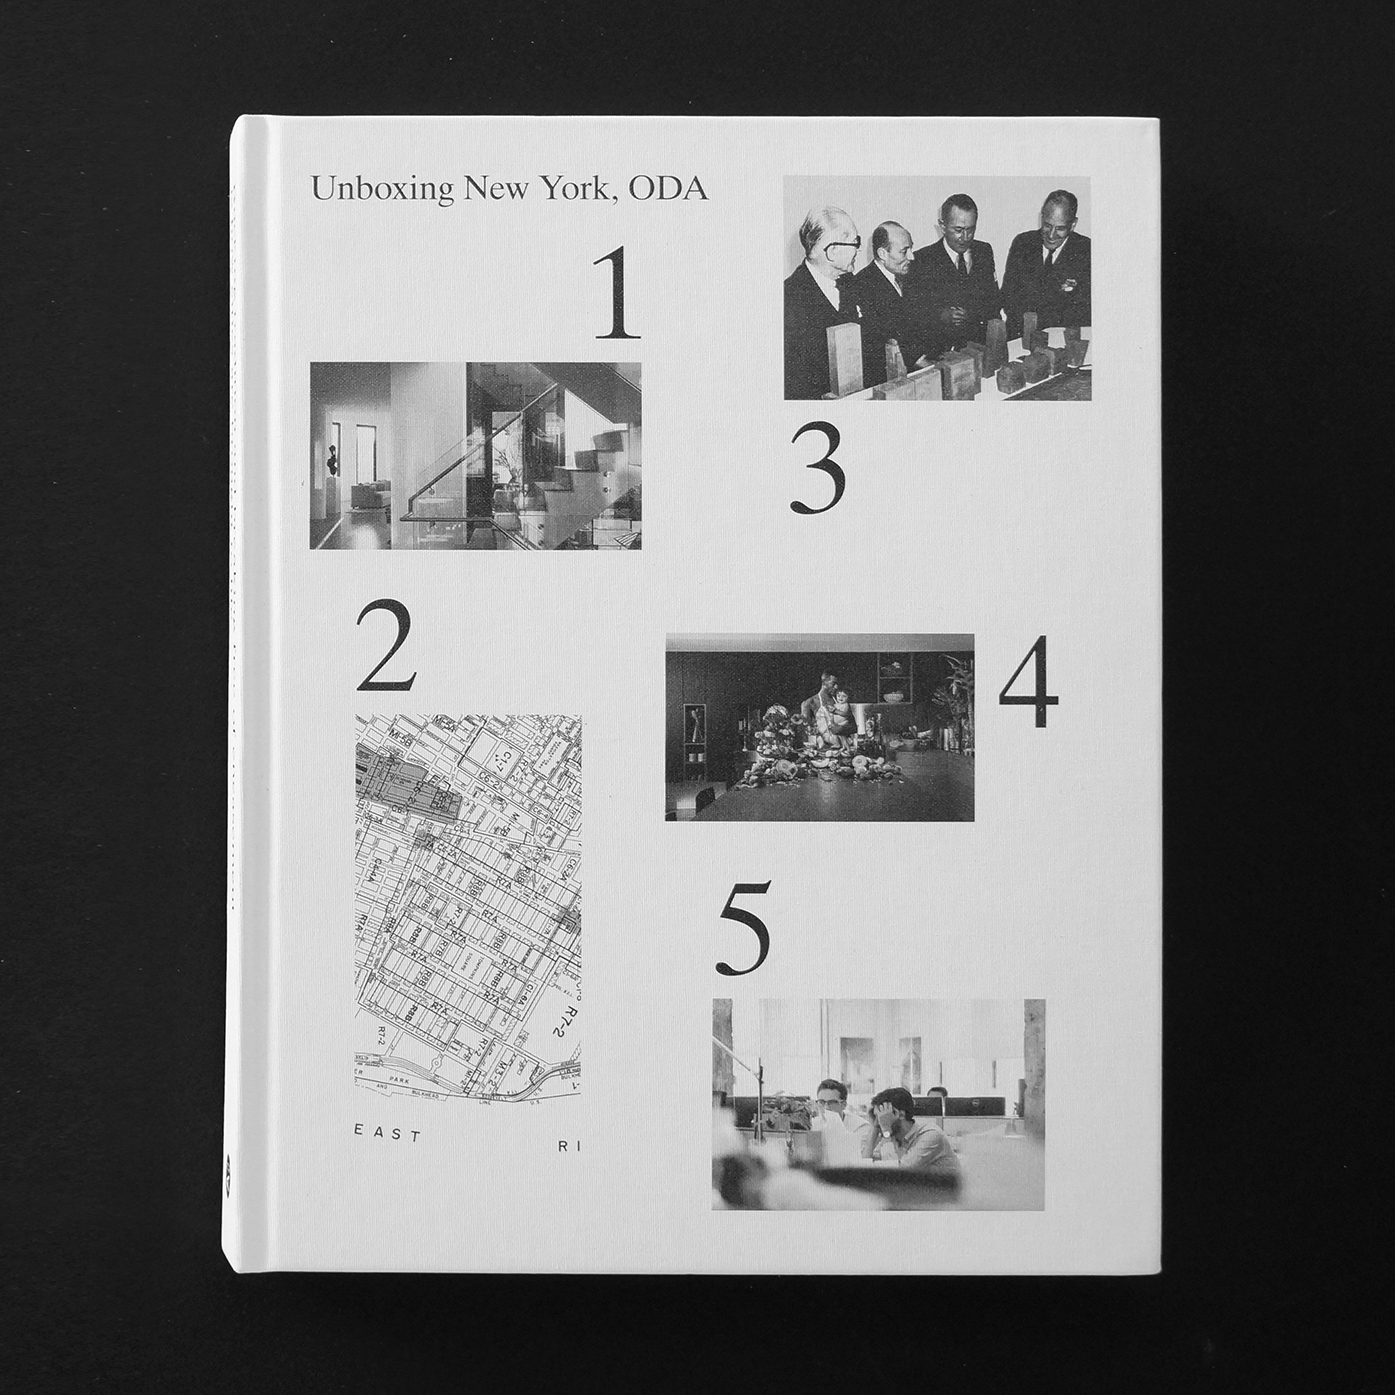 ODA NY:  Unboxing New York       Unboxing New York  is a behind-the-scenes look at the changing shape of New York City. It examines the forces, theories, and histories that affect our city's form.